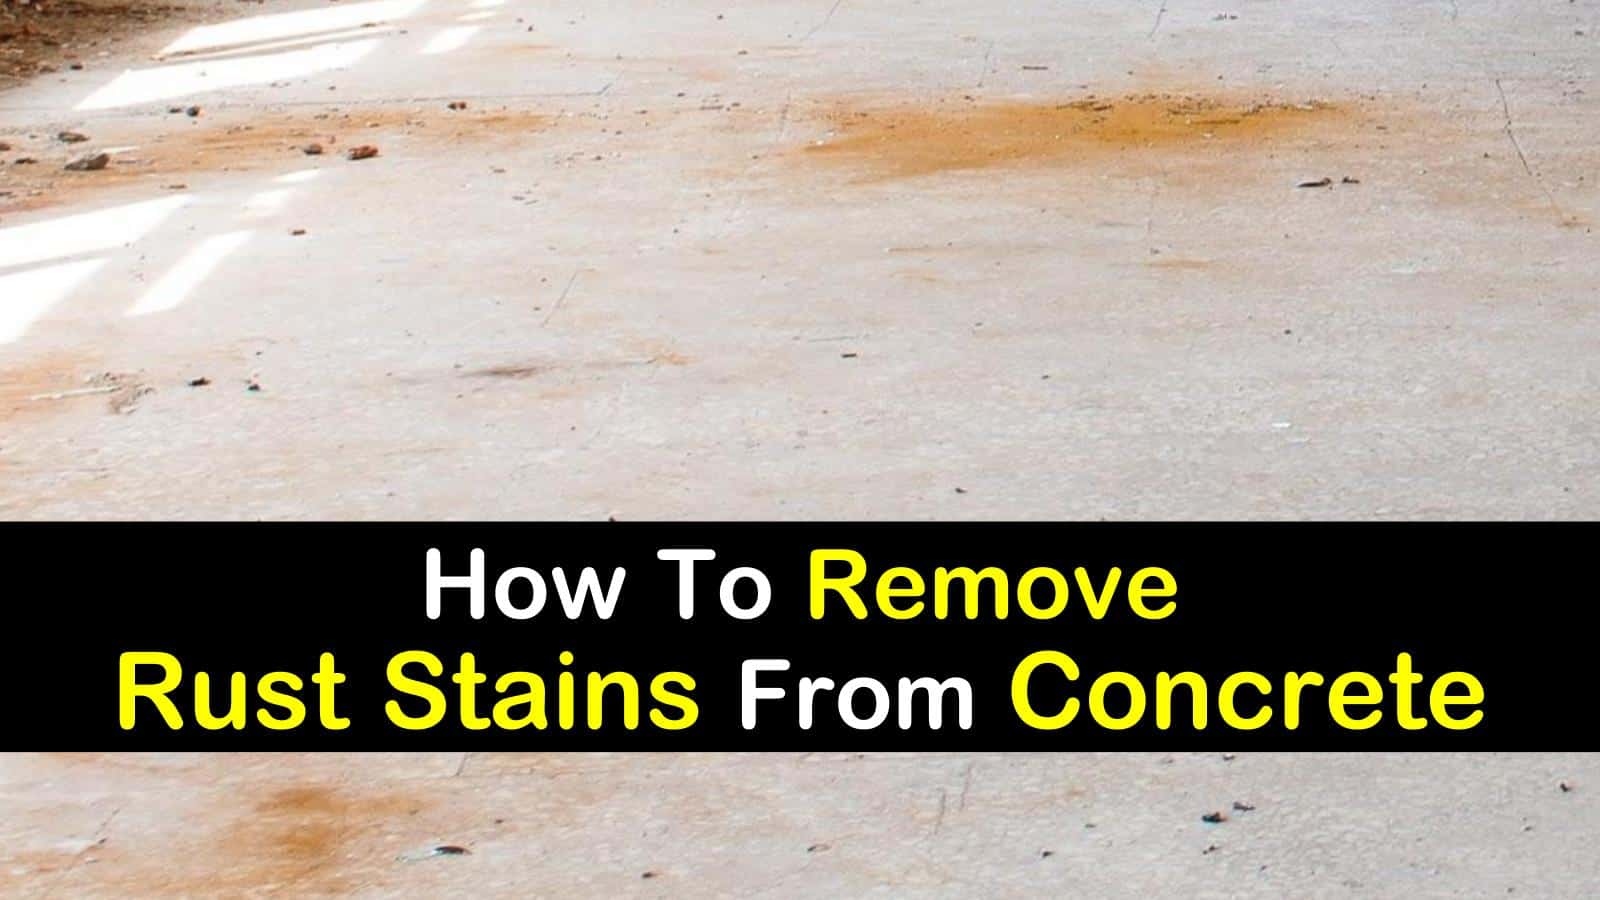 how to remove rust stains from concrete titilimg